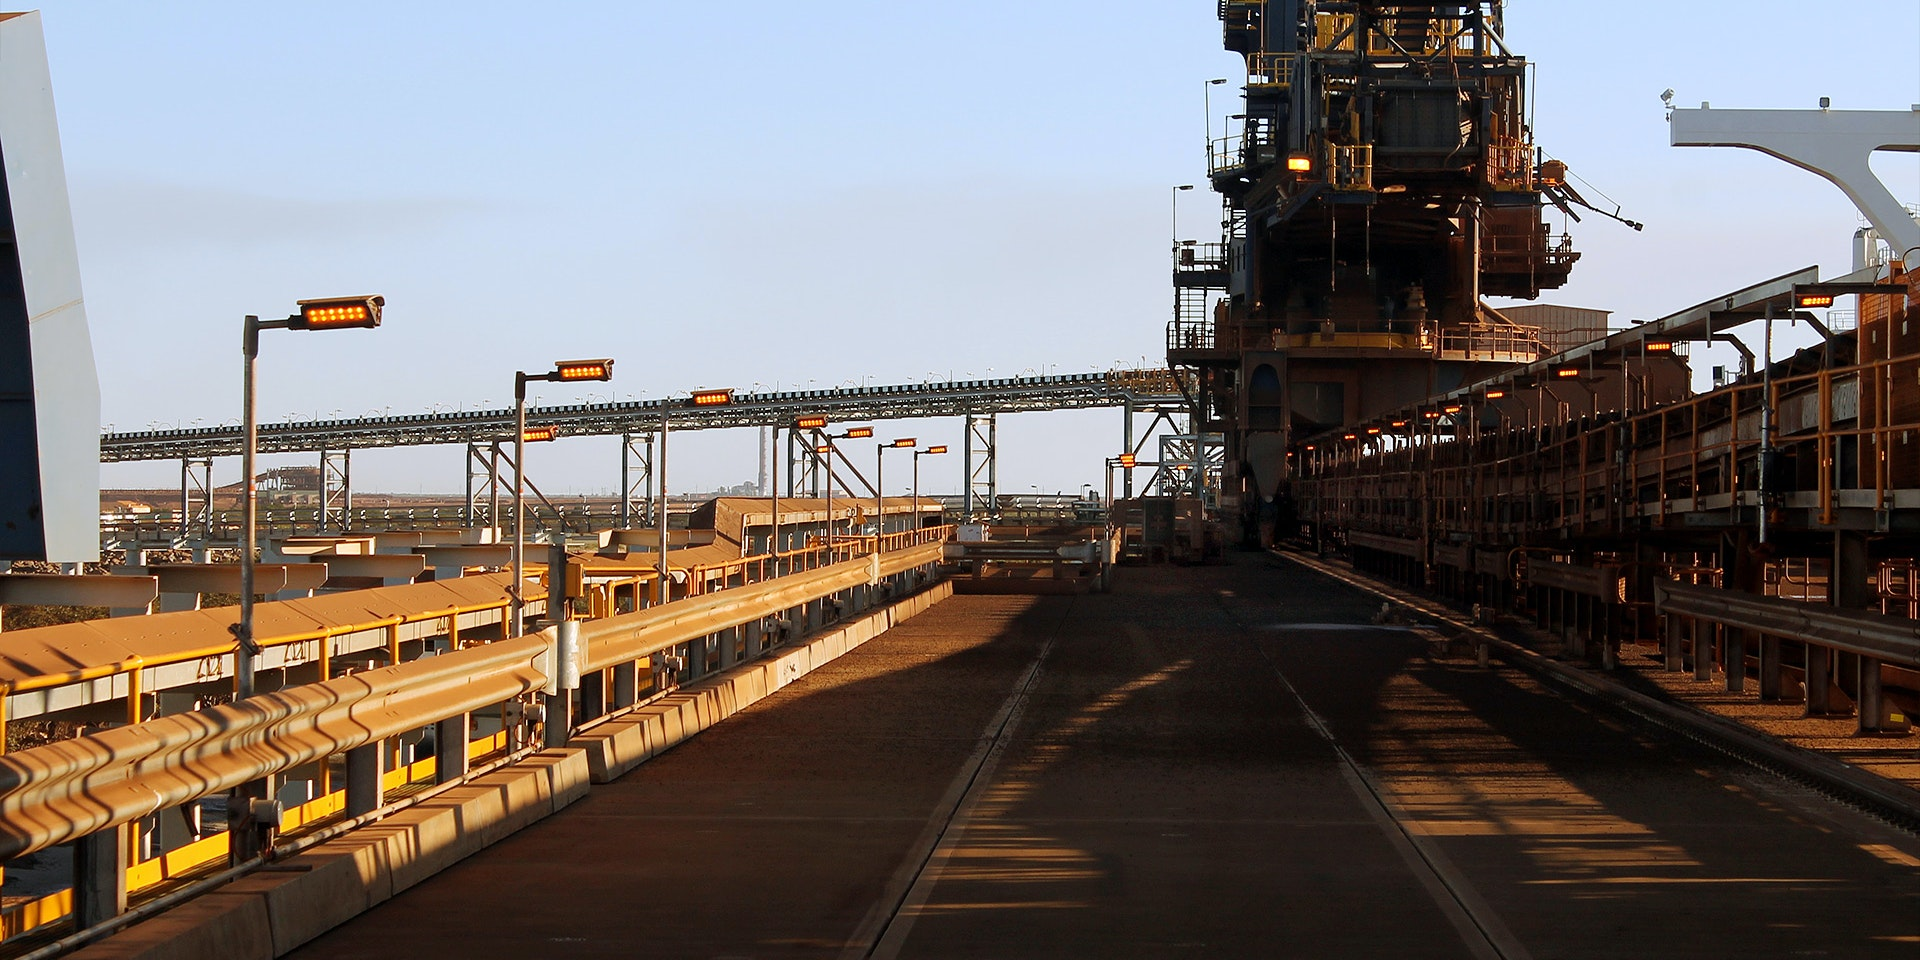 DLK LED Conveyor / Area Light in application, installed on a conveyor on an iron ore mine in bulk port